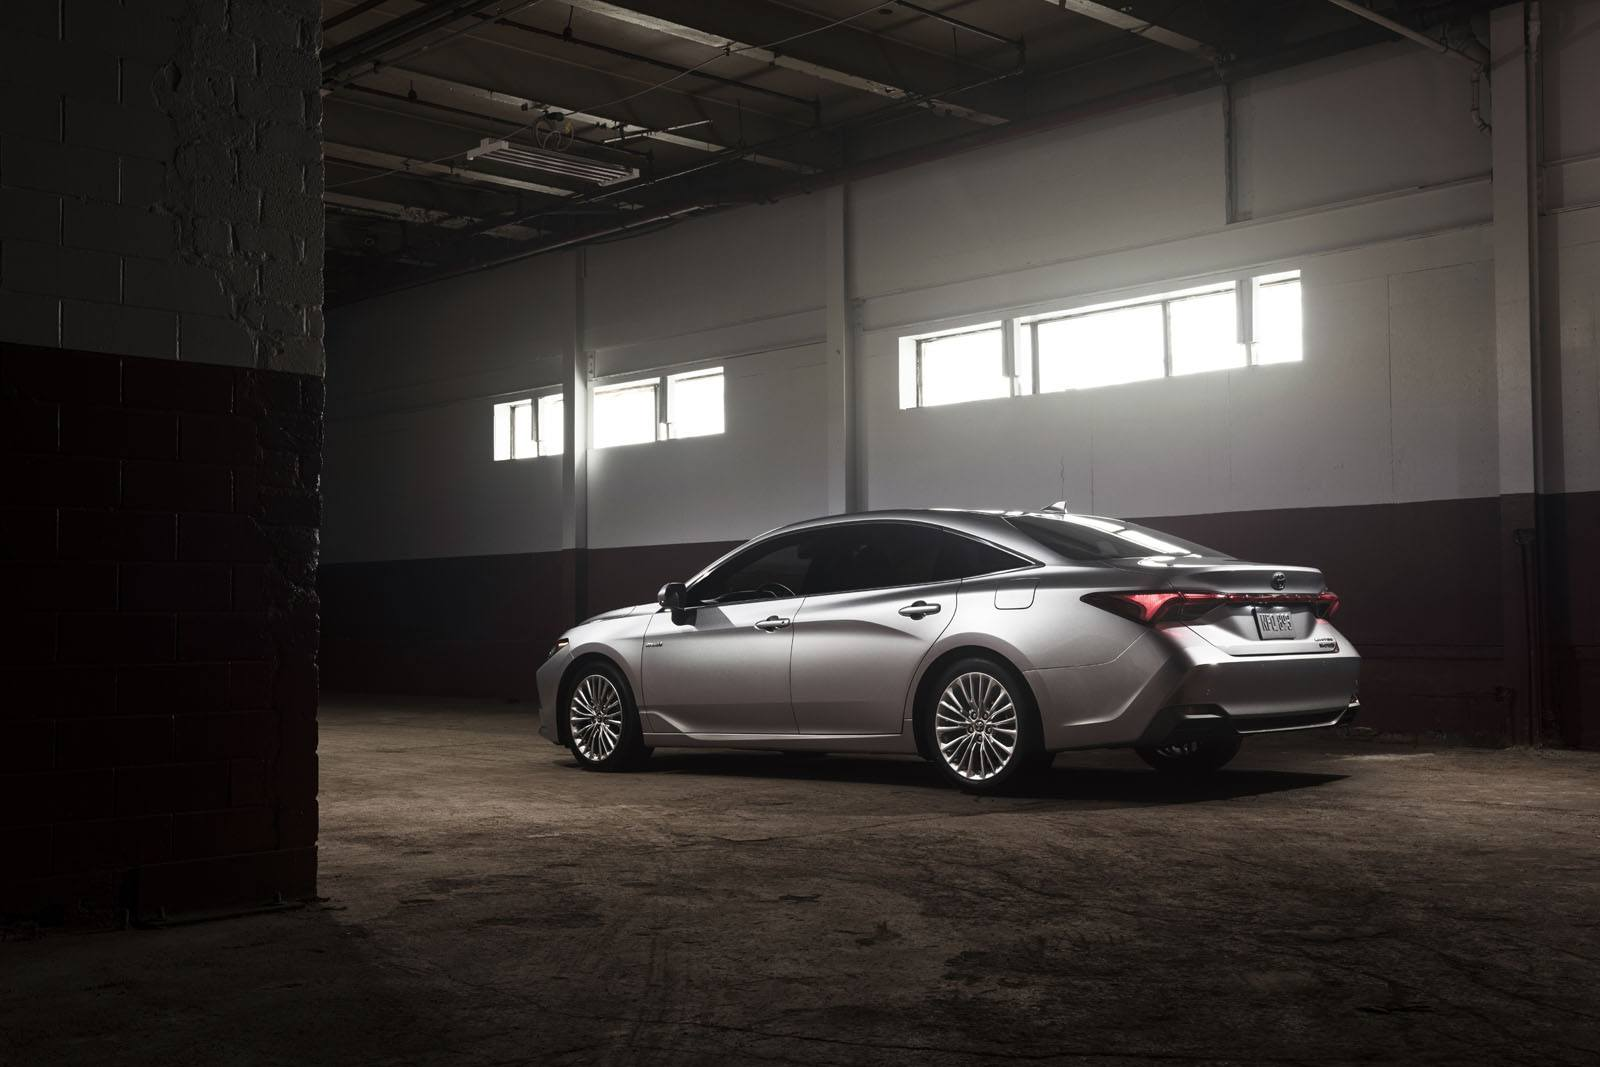 Brand New 2019 Toyota Avalon Debuts: 5 Things You Need To